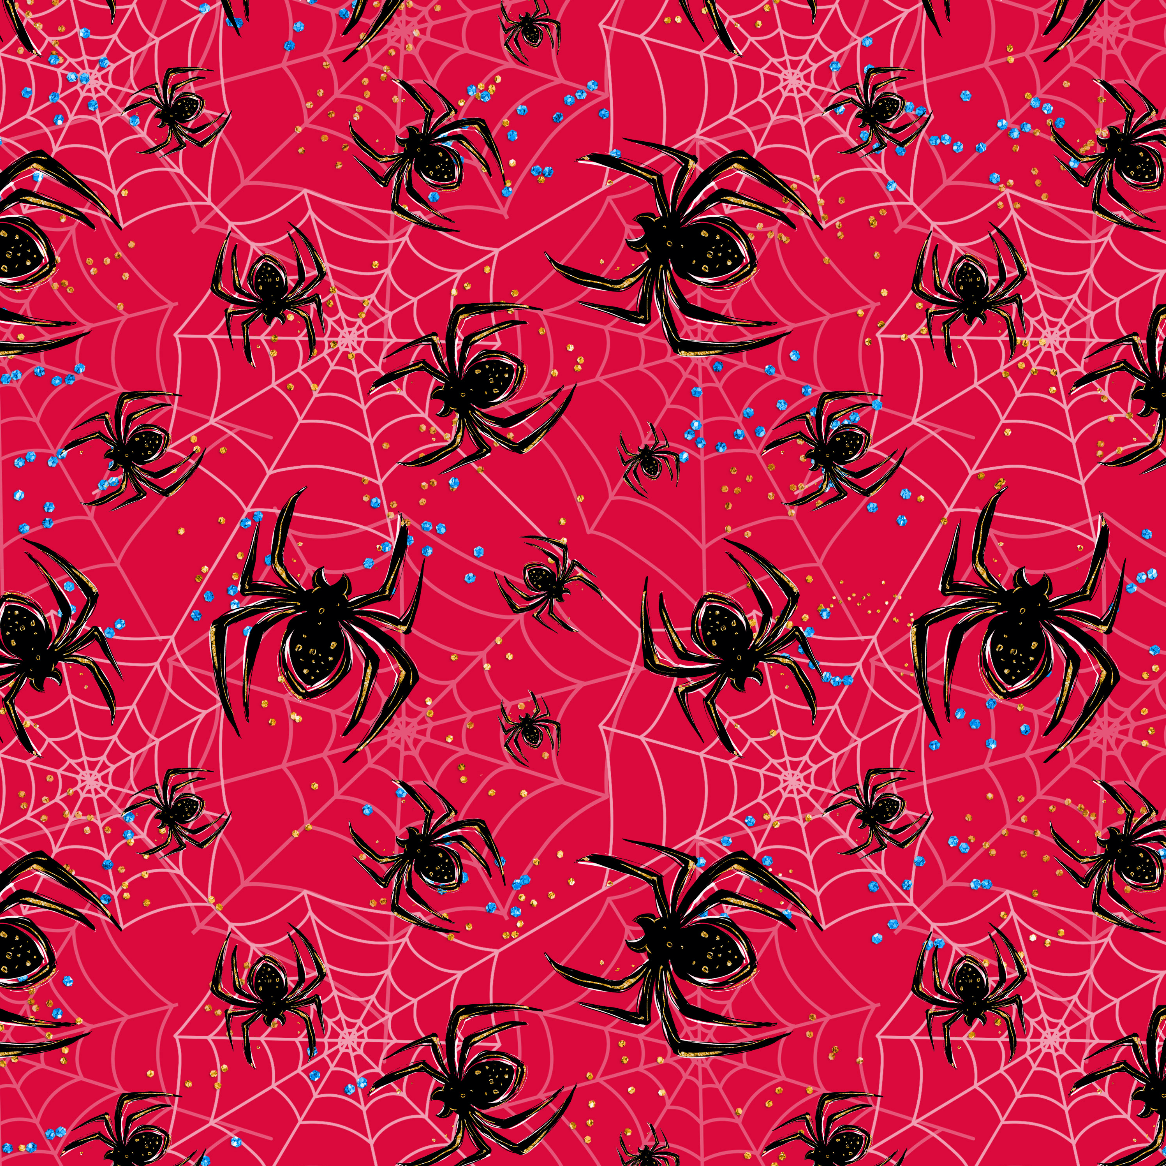 PRE ORDER - Superhero Red Spiders - Digital Fabric Print